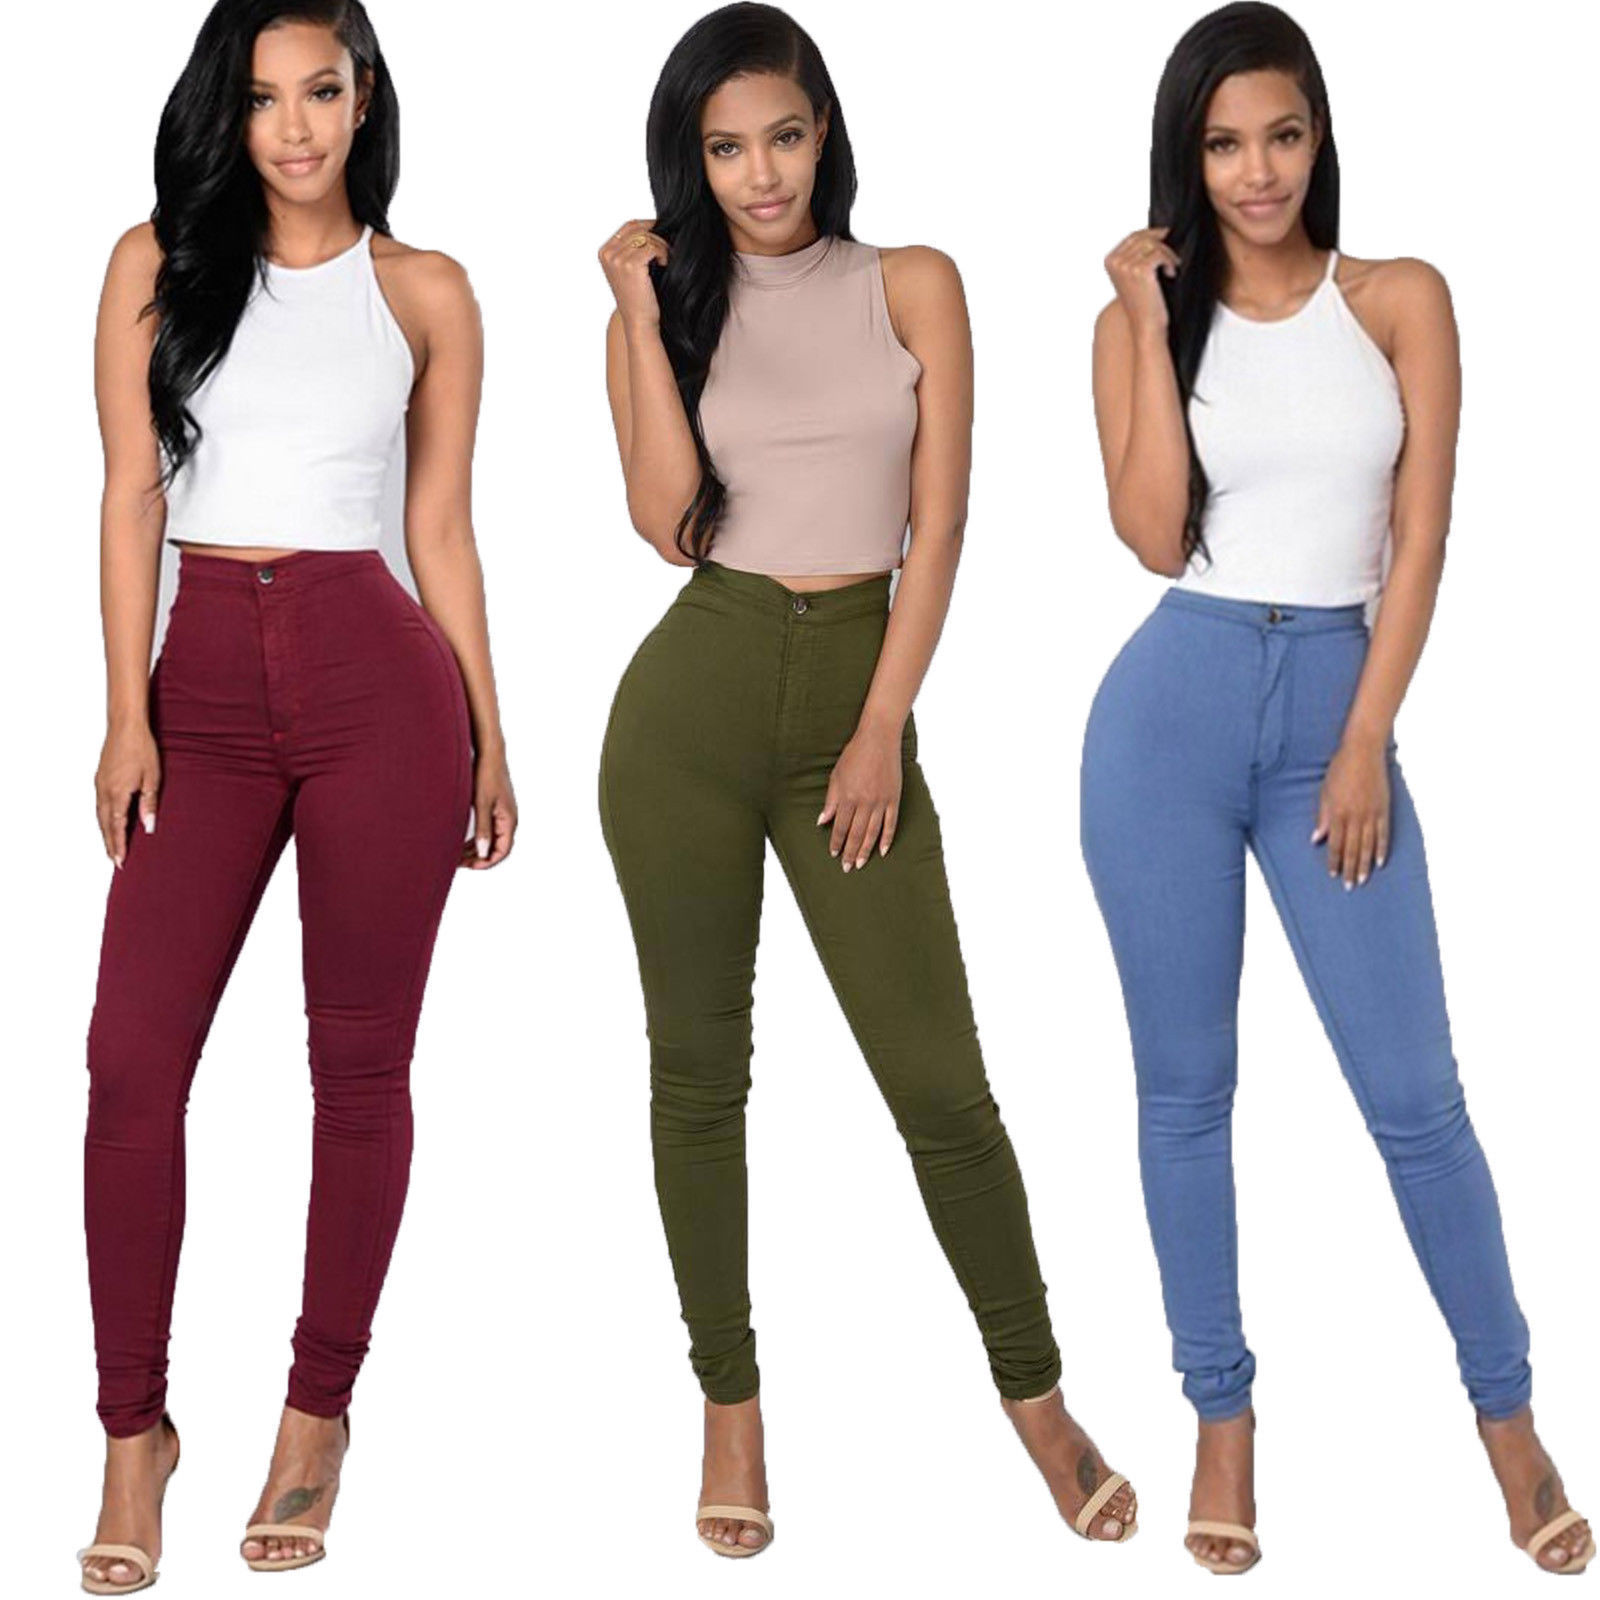 Pencil Jeans Women Stretch Casual Denim Skinny Pants Ladies Fashionable High Waist Tight Trousers 5 Color Hot Jeans Women Bottom ! Plus Size Women's Clothing & Accessories